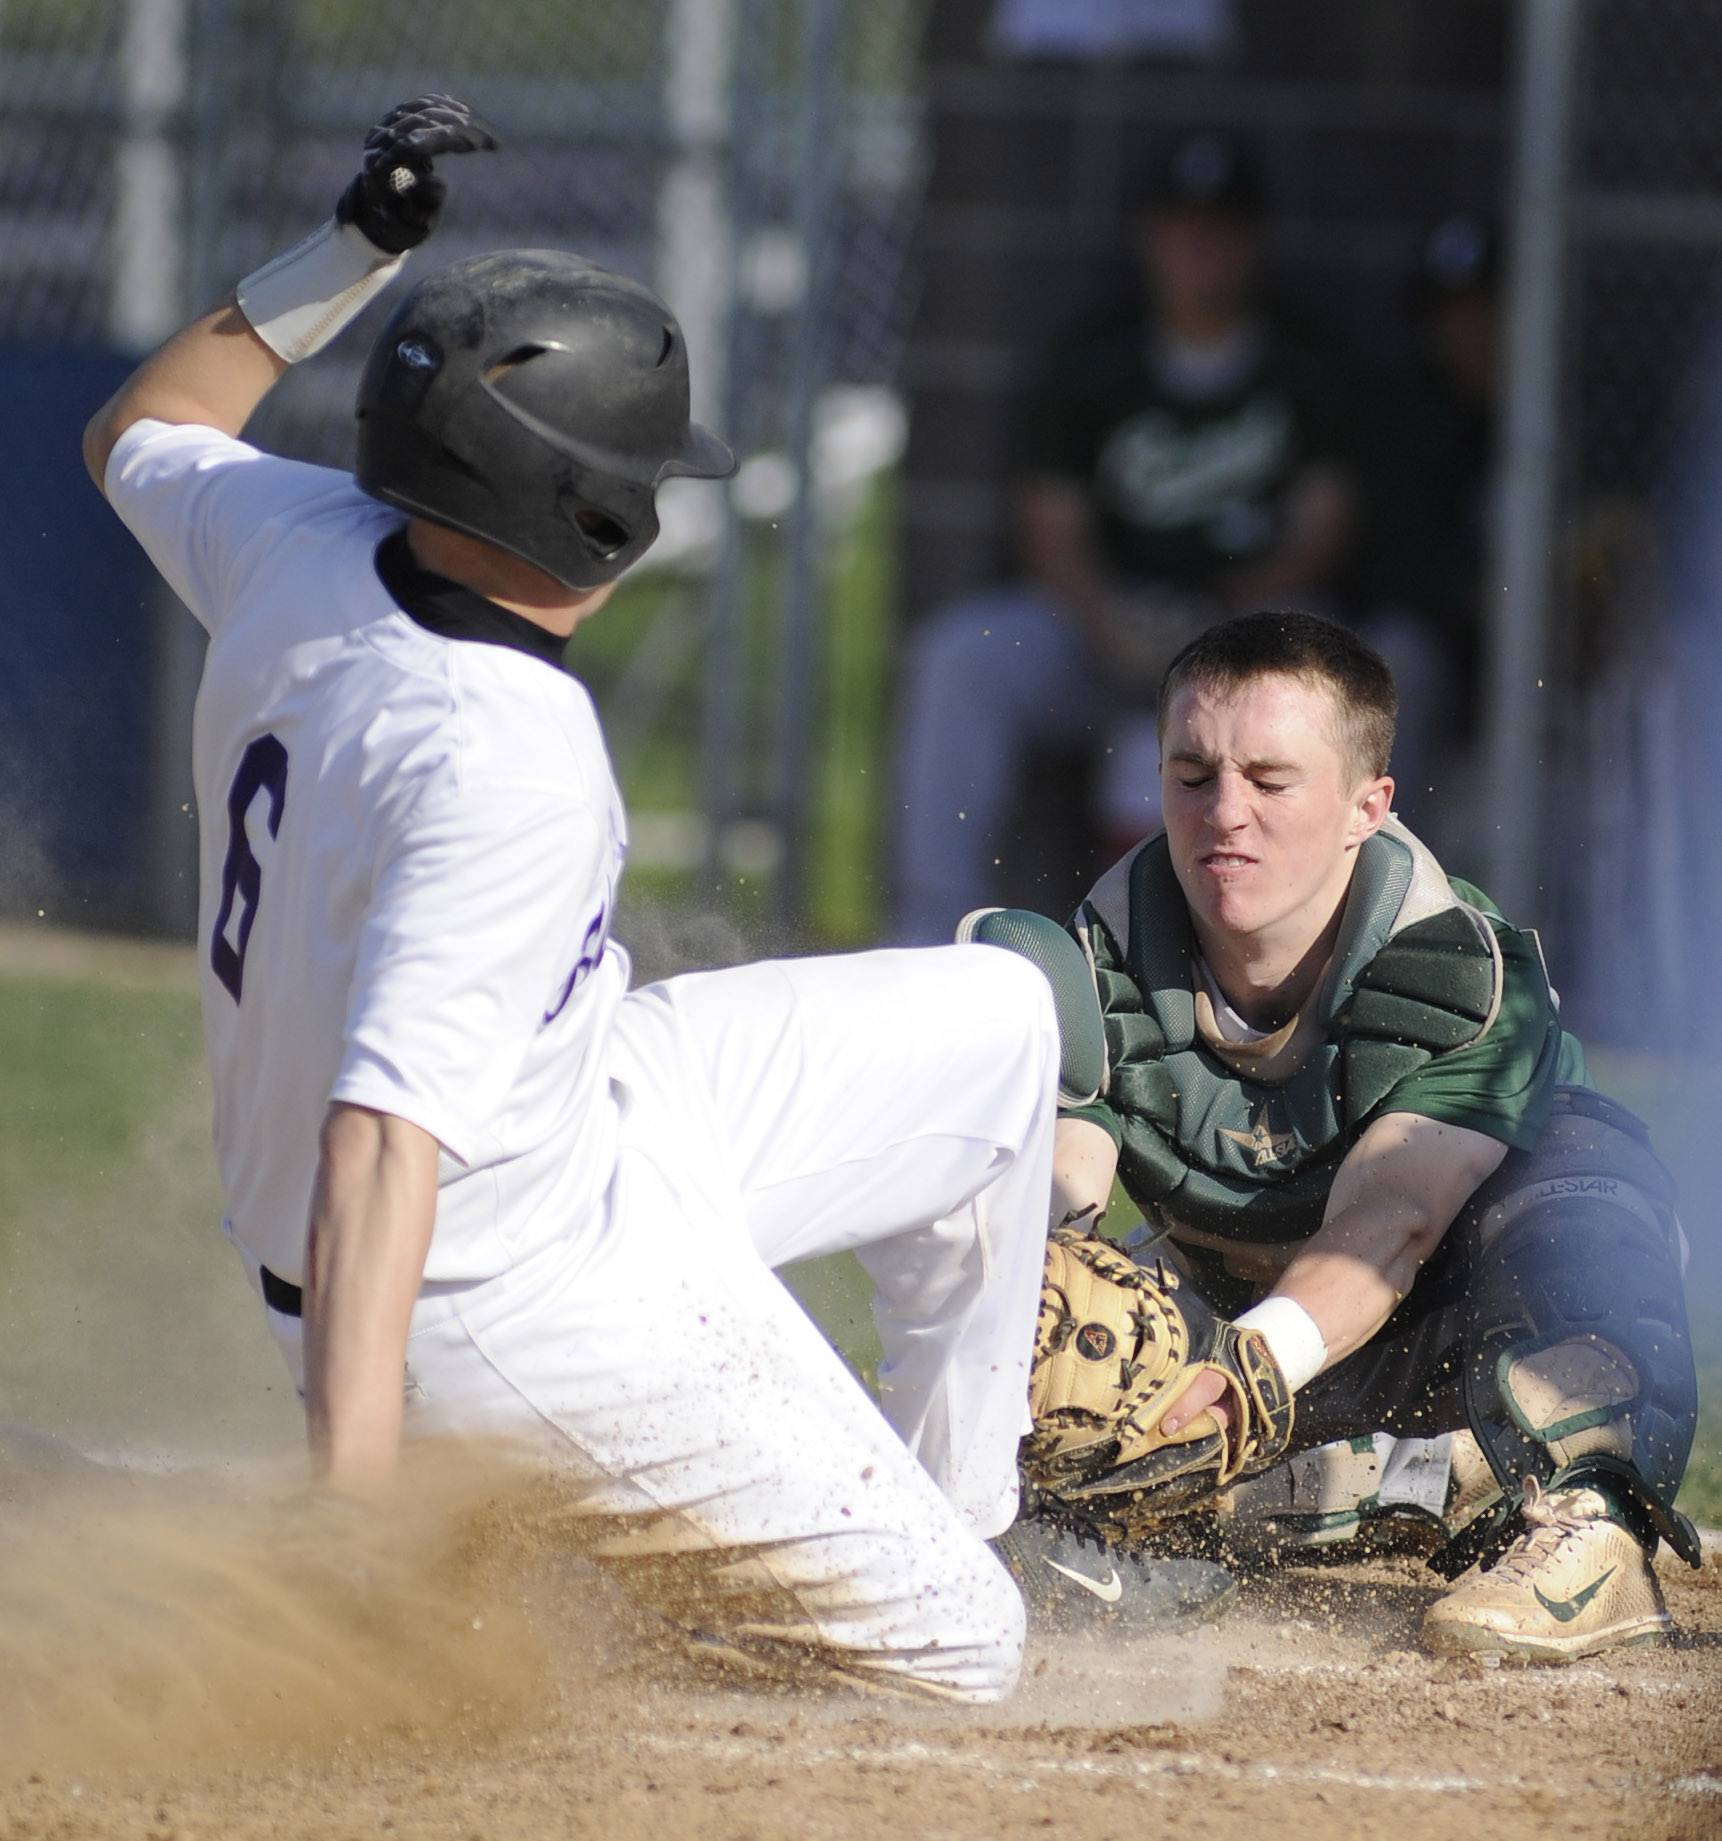 Hampshire's Dillon Kuhn slides into home plate before colliding with Grayslake Central catcher Sam Nozicka in the second inning at Hampshire High School on Friday.